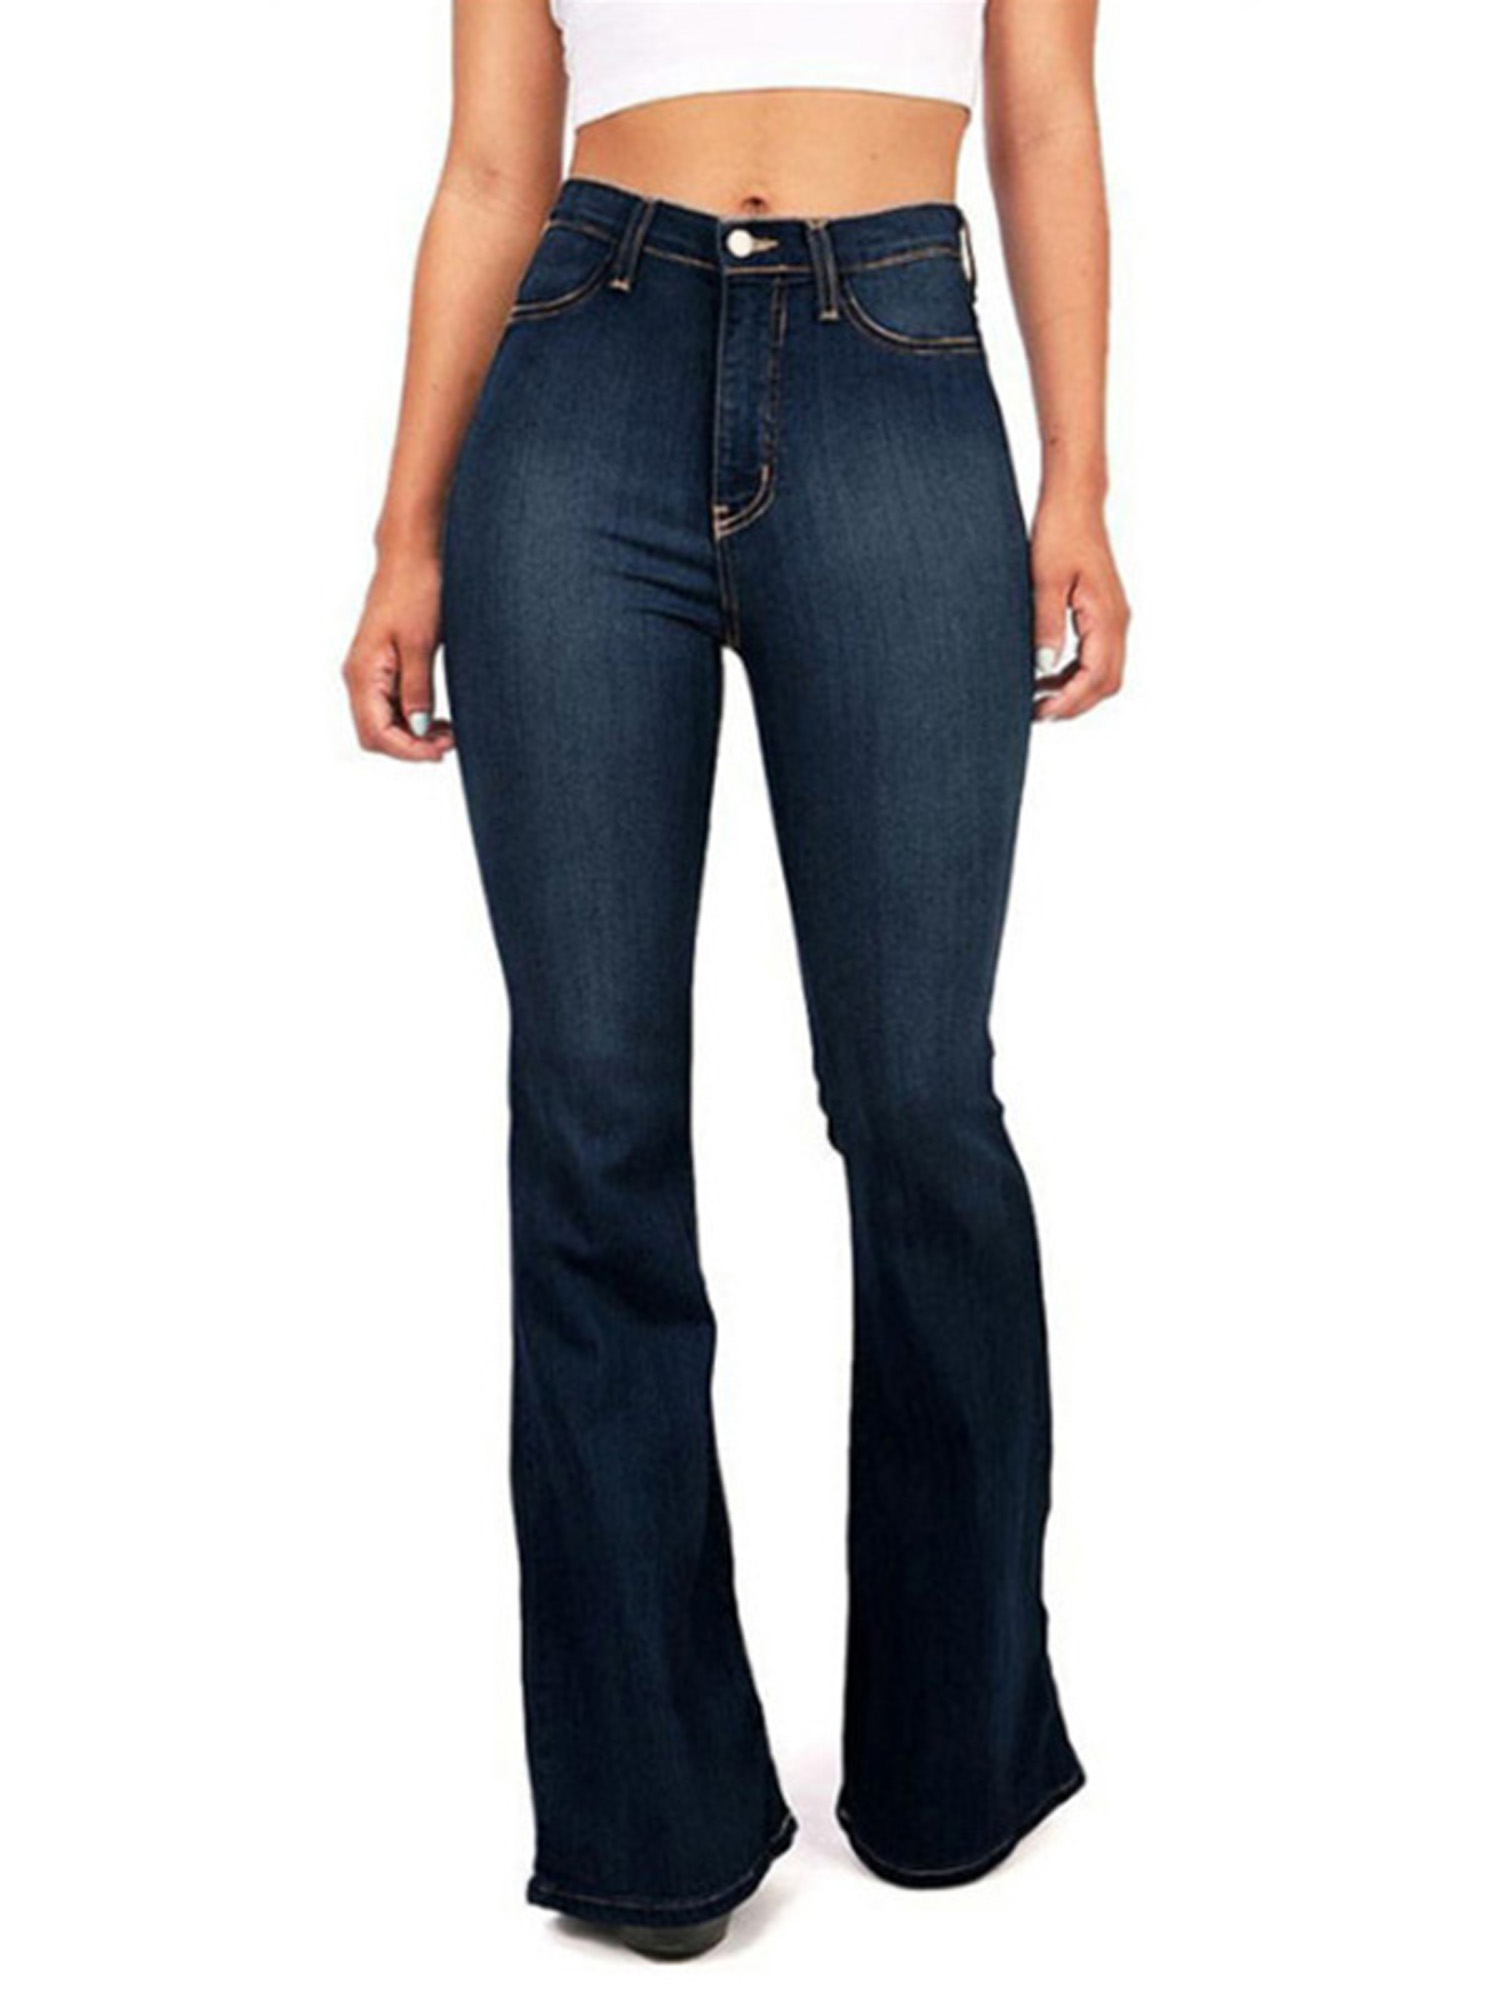 Womens Denim Jeans Ladies High Waisted Flared Bootcut Trousers Pants Size 8-18